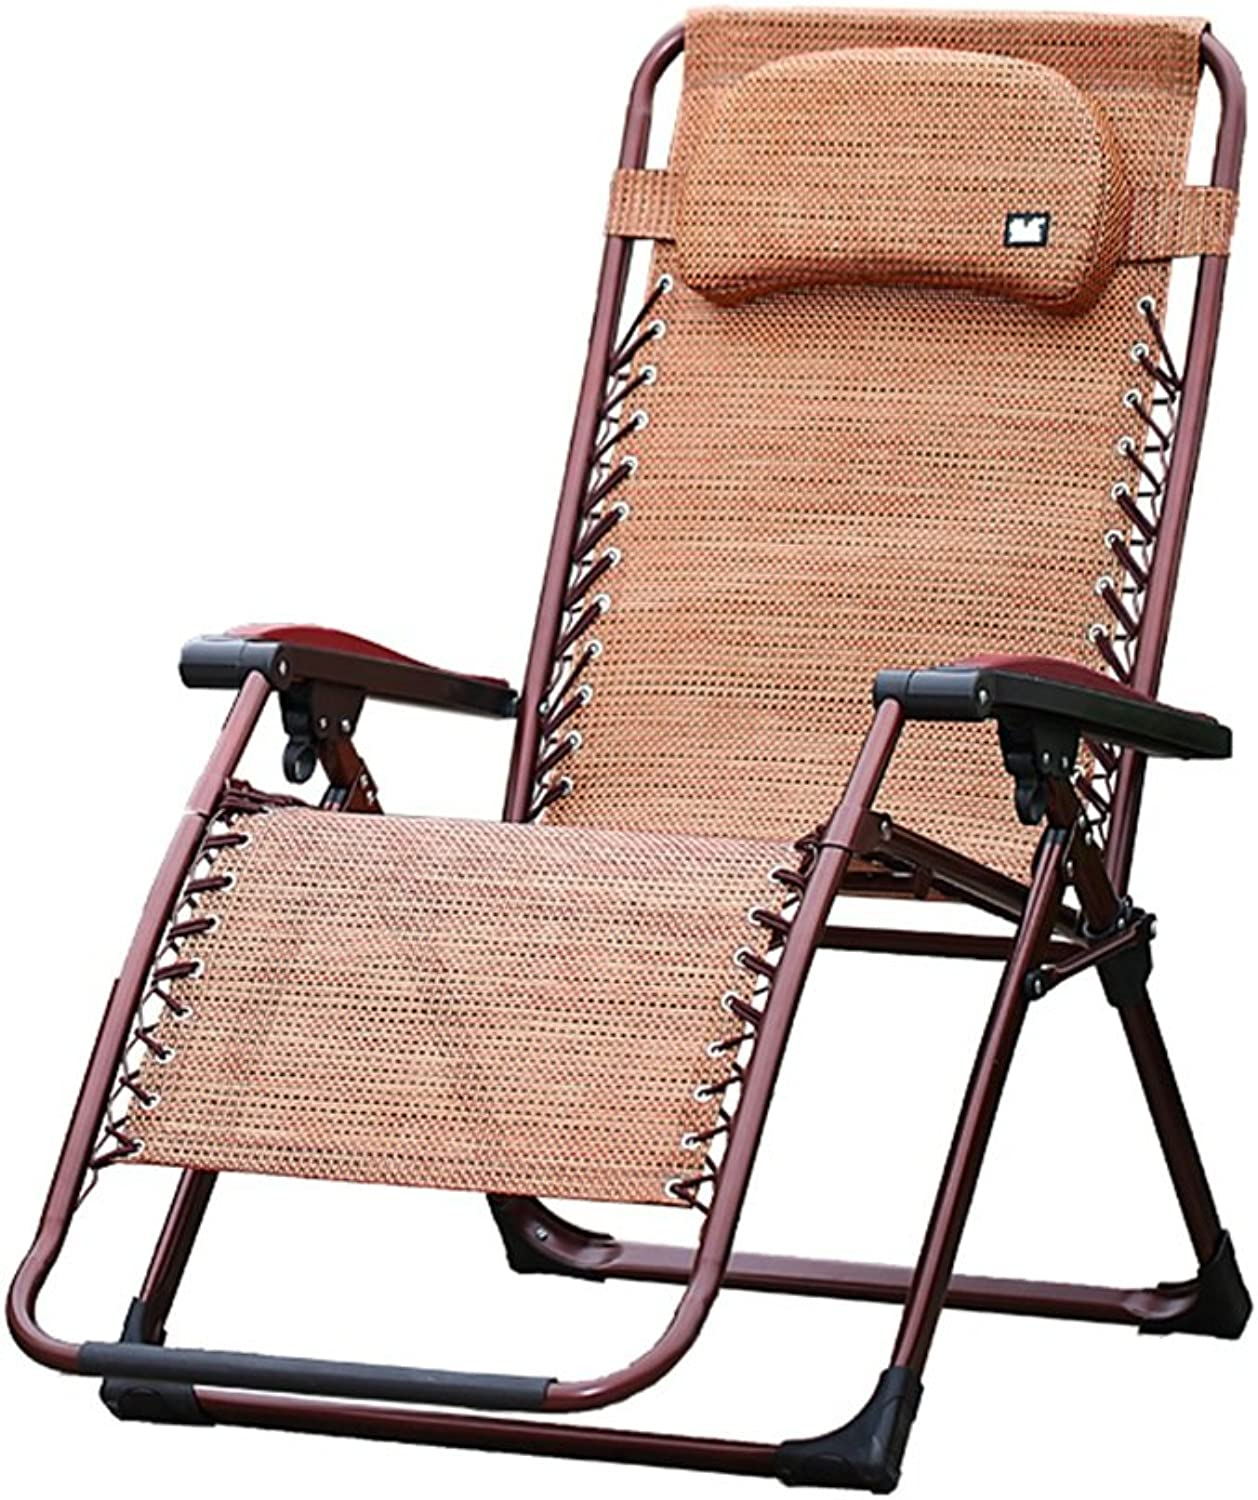 Folding chair QFFL Recliners Adult Office Nap Chair Home Multi-function Chair Balcony Chair Outdoor stool